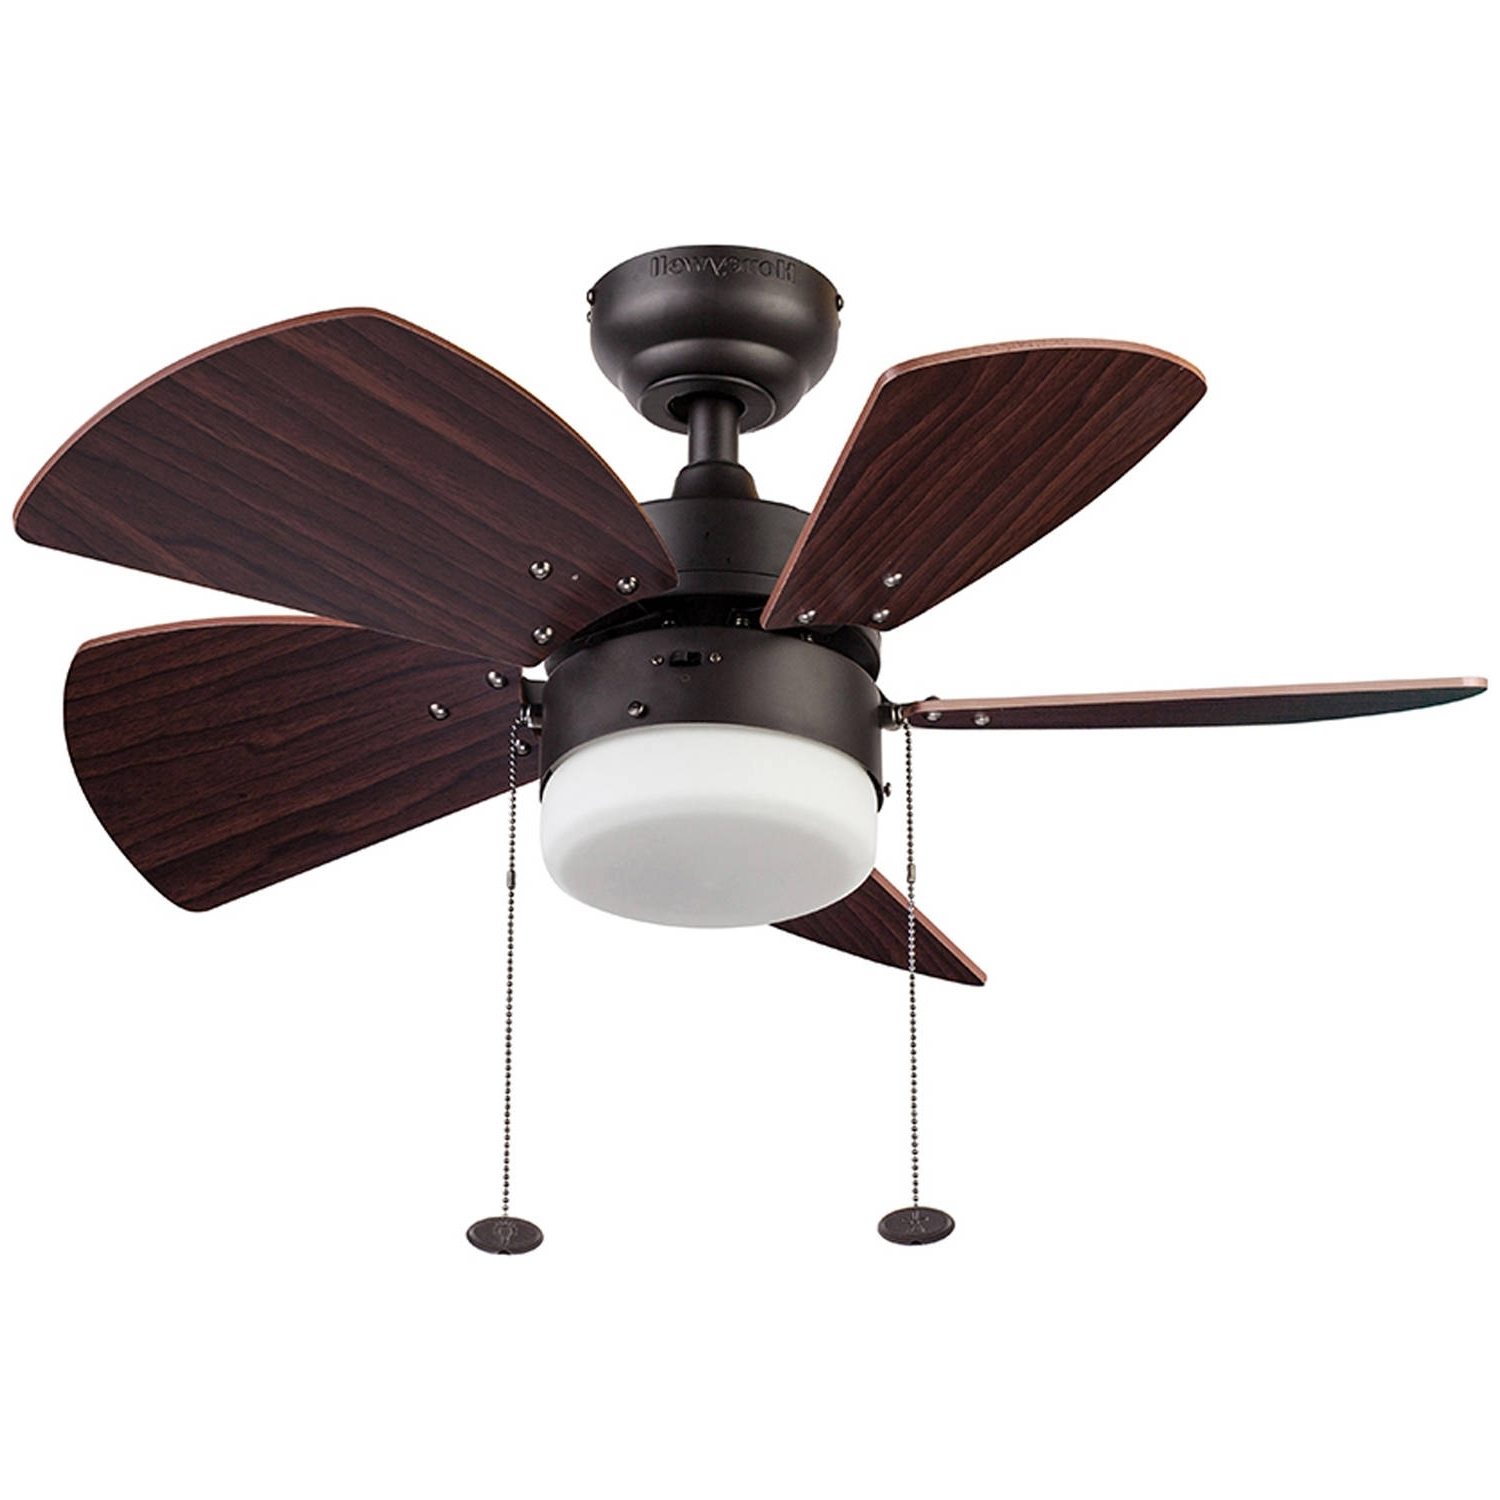 Outdoor Ceiling Fans At Walmart Throughout Best And Newest 30Quot; Honeywell Lenox Ceiling Fan, Bronze Walmartcom, Ceiling Fans (View 6 of 20)